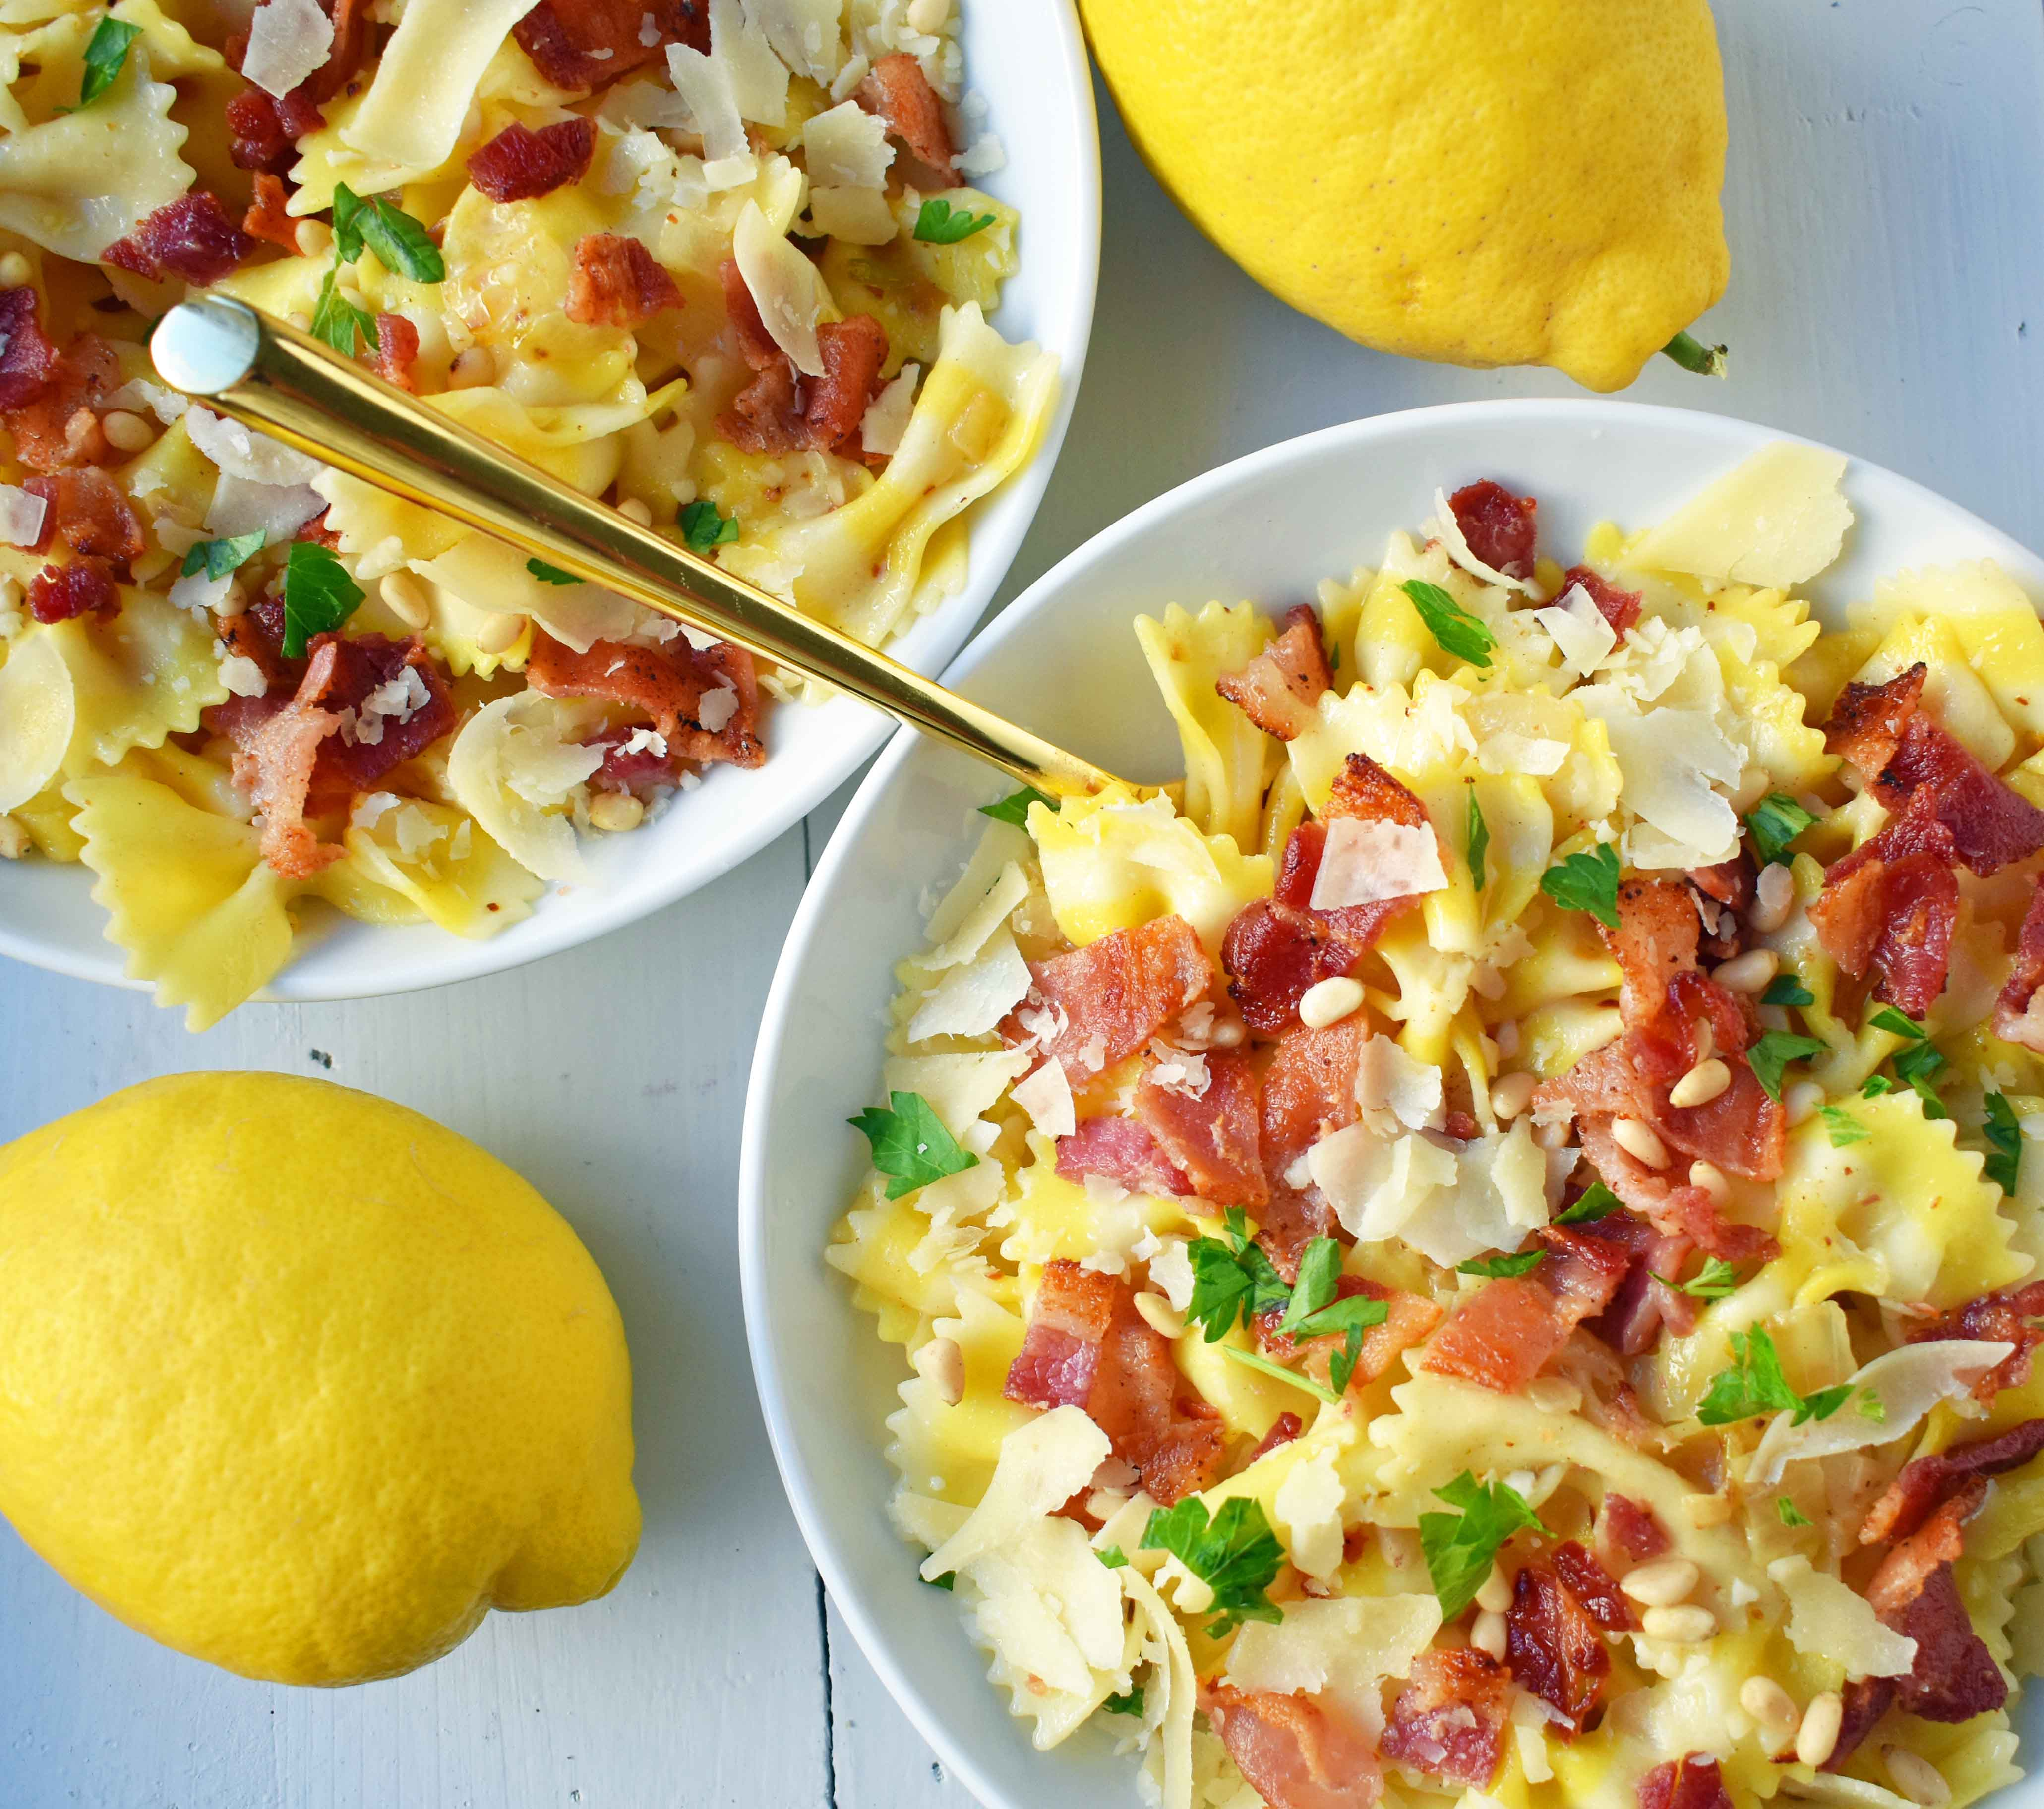 Lemon Garlic and Crispy Bacon Pasta. Farfalle, bowtie pasta, with butter, caramelized onions, and garlic all topped with crispy bacon, parmesan cheese, and pine nuts. A light and fresh pasta with lemon butter and bacon. www.modernhoney.com